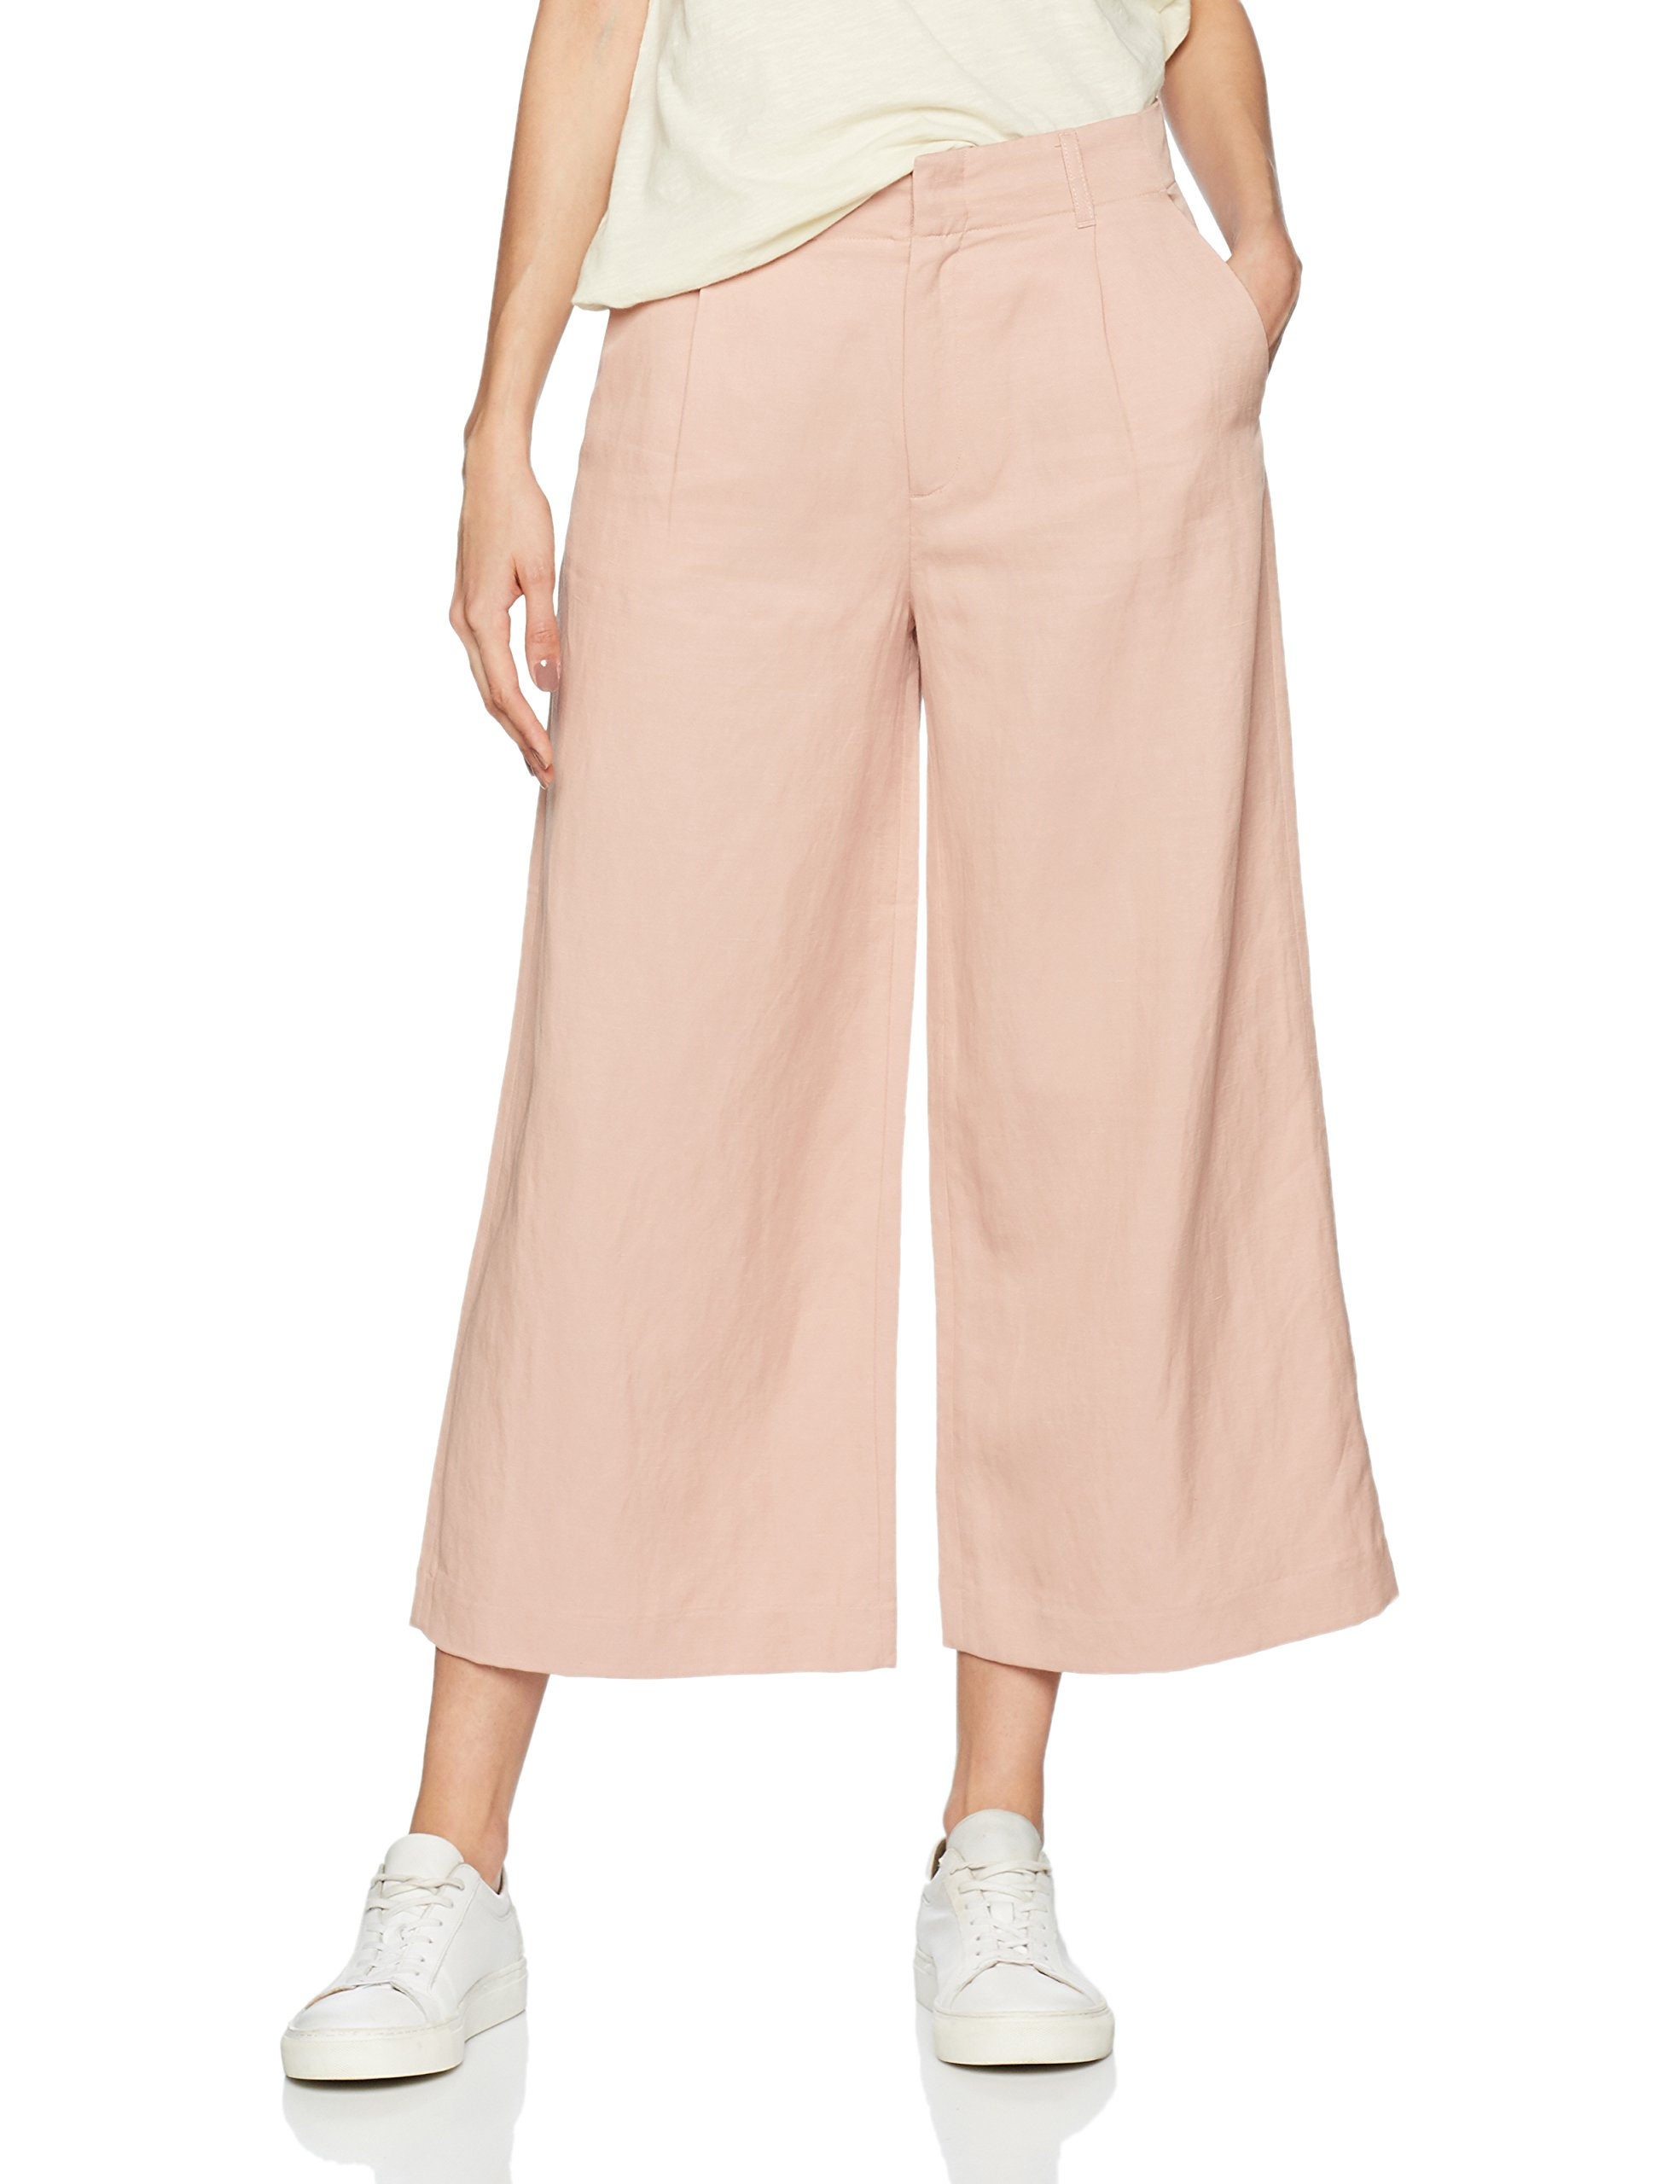 FabricantX smallFemme Max Trousers PantalonRosepetal6taille Cropped K Wide Filippa sCdxthQr